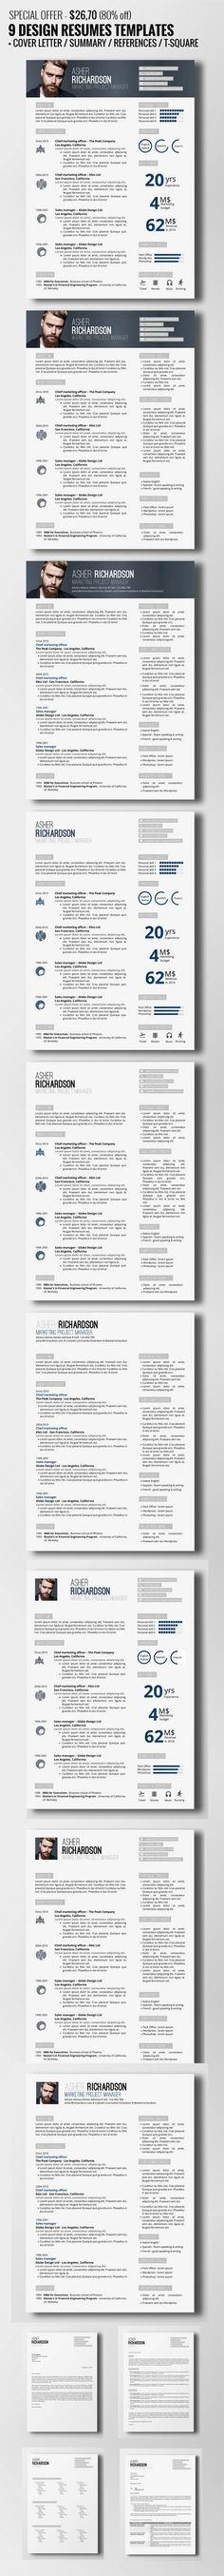 435 best Resume images on Pinterest Resume design, Design resume - design cover letter